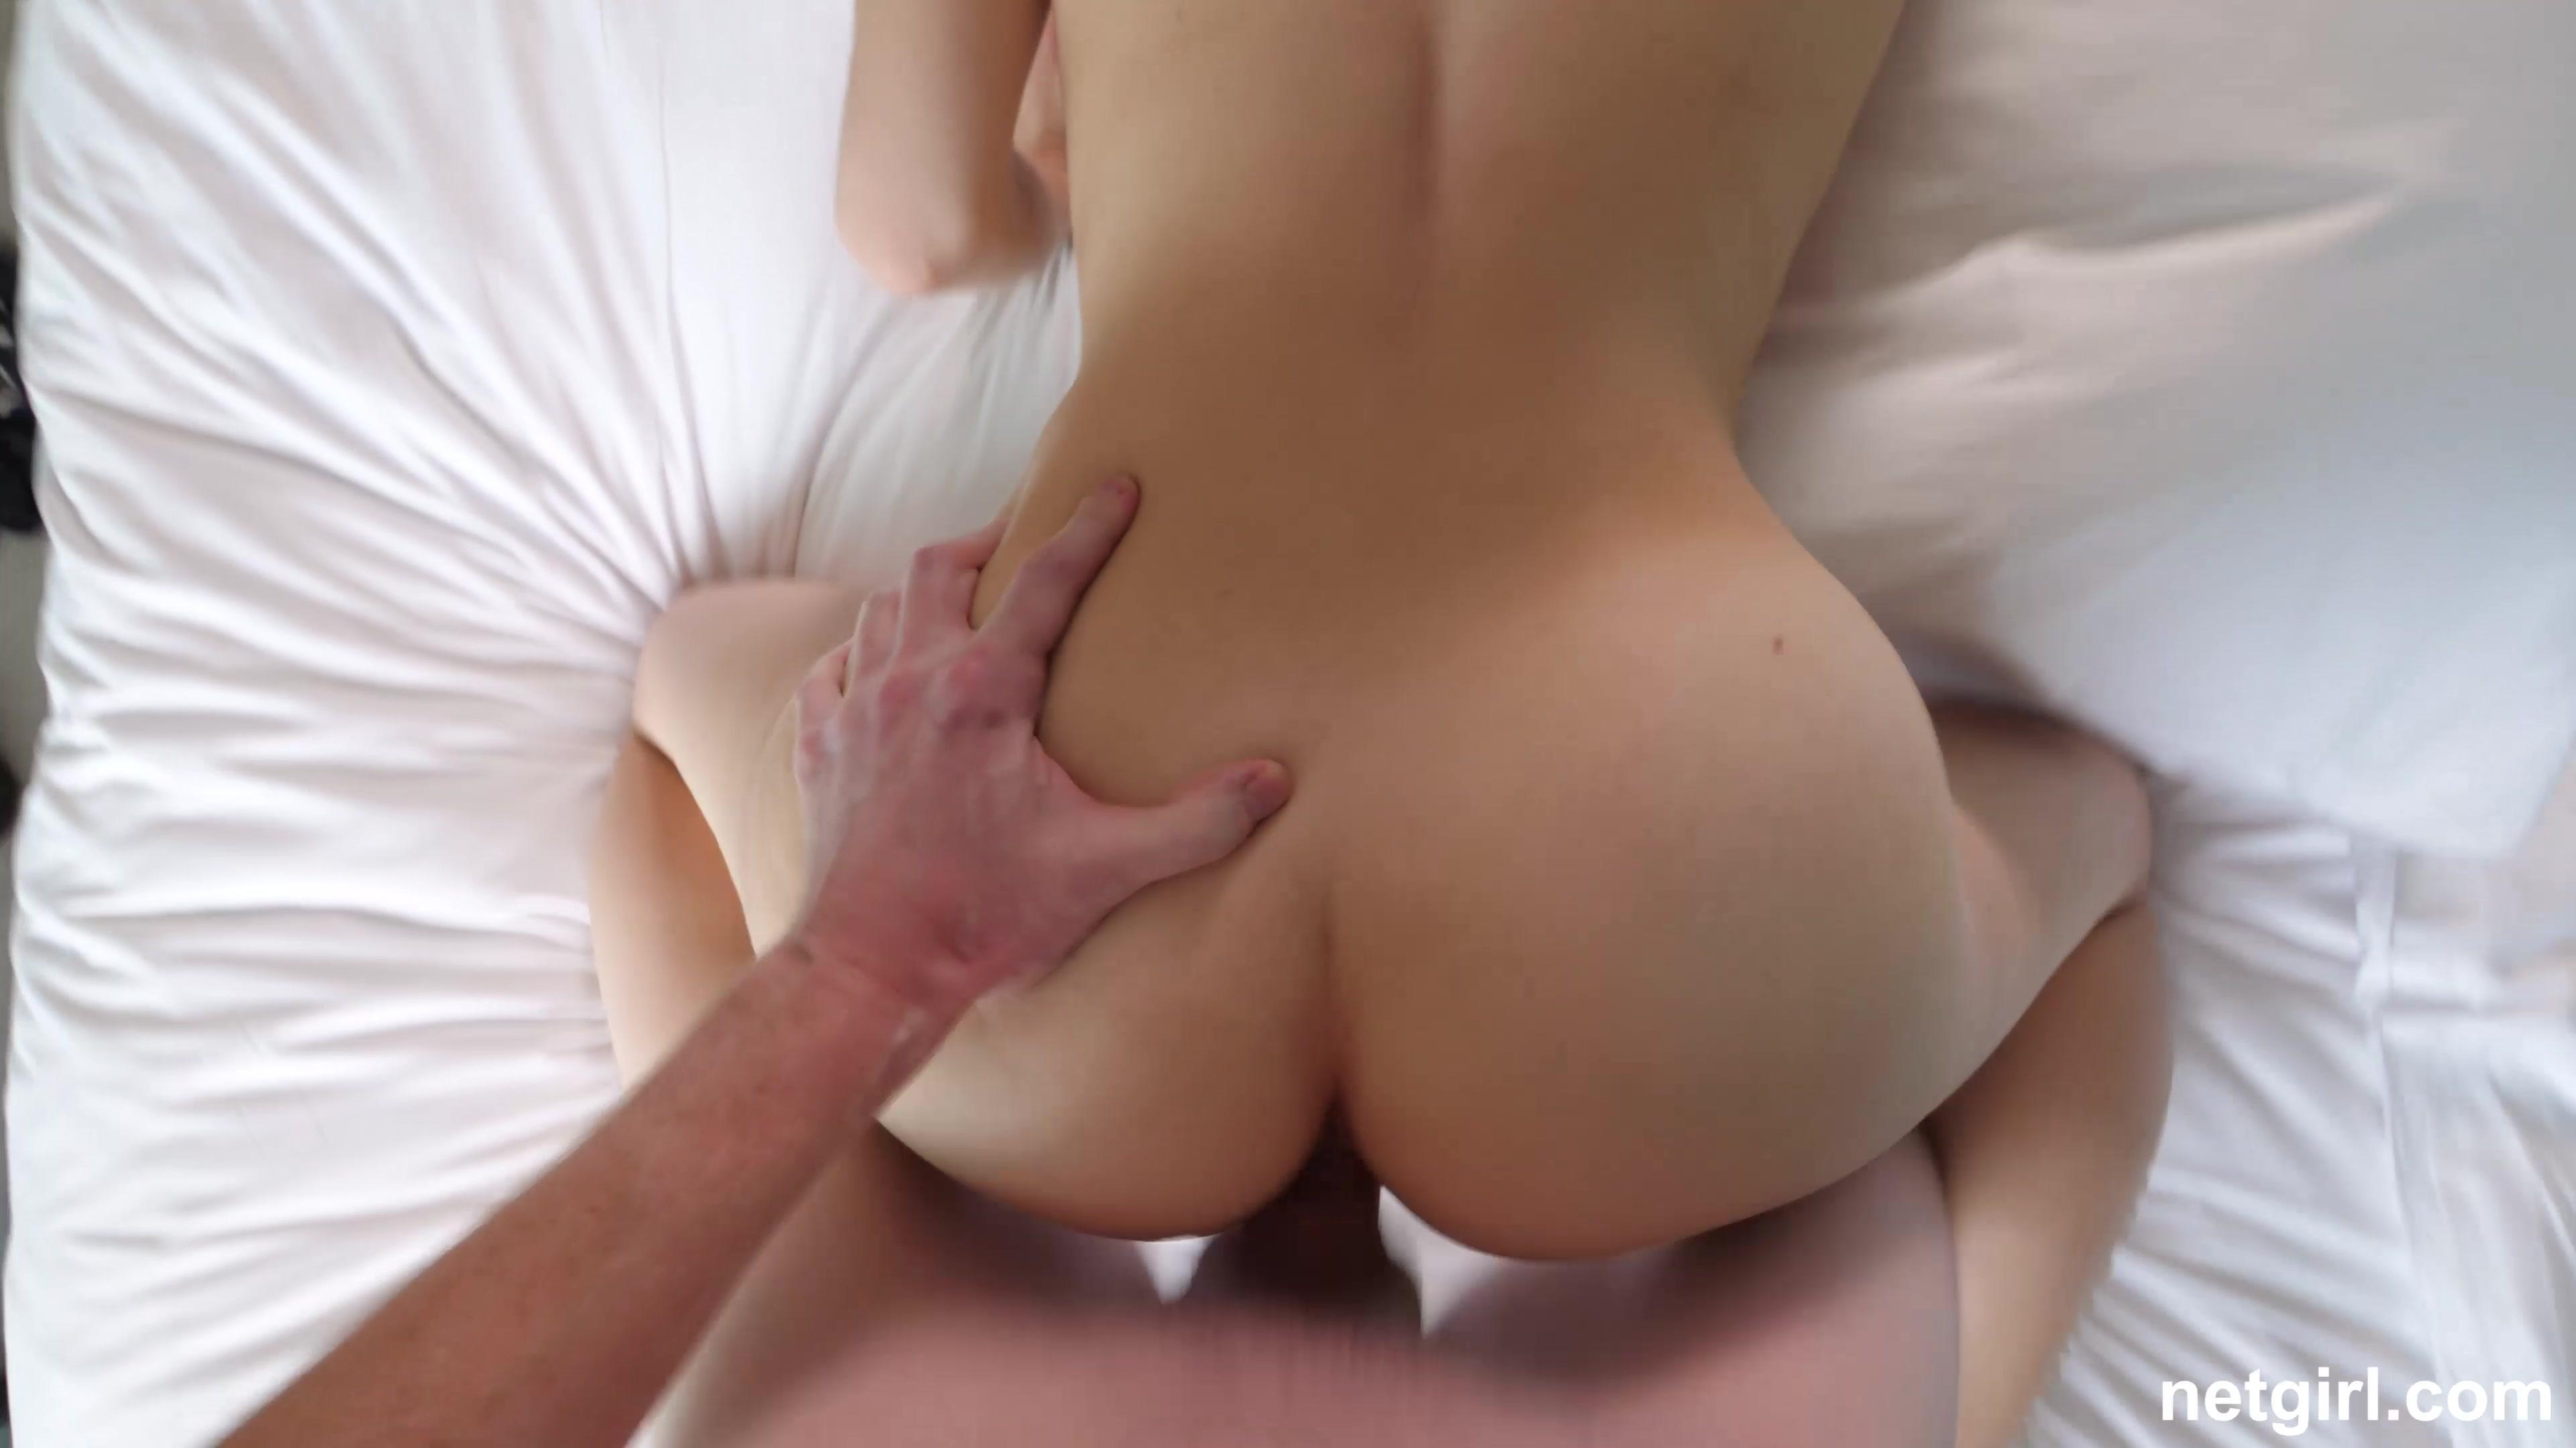 Anika gives porn a try   Coed Cherry photo 5